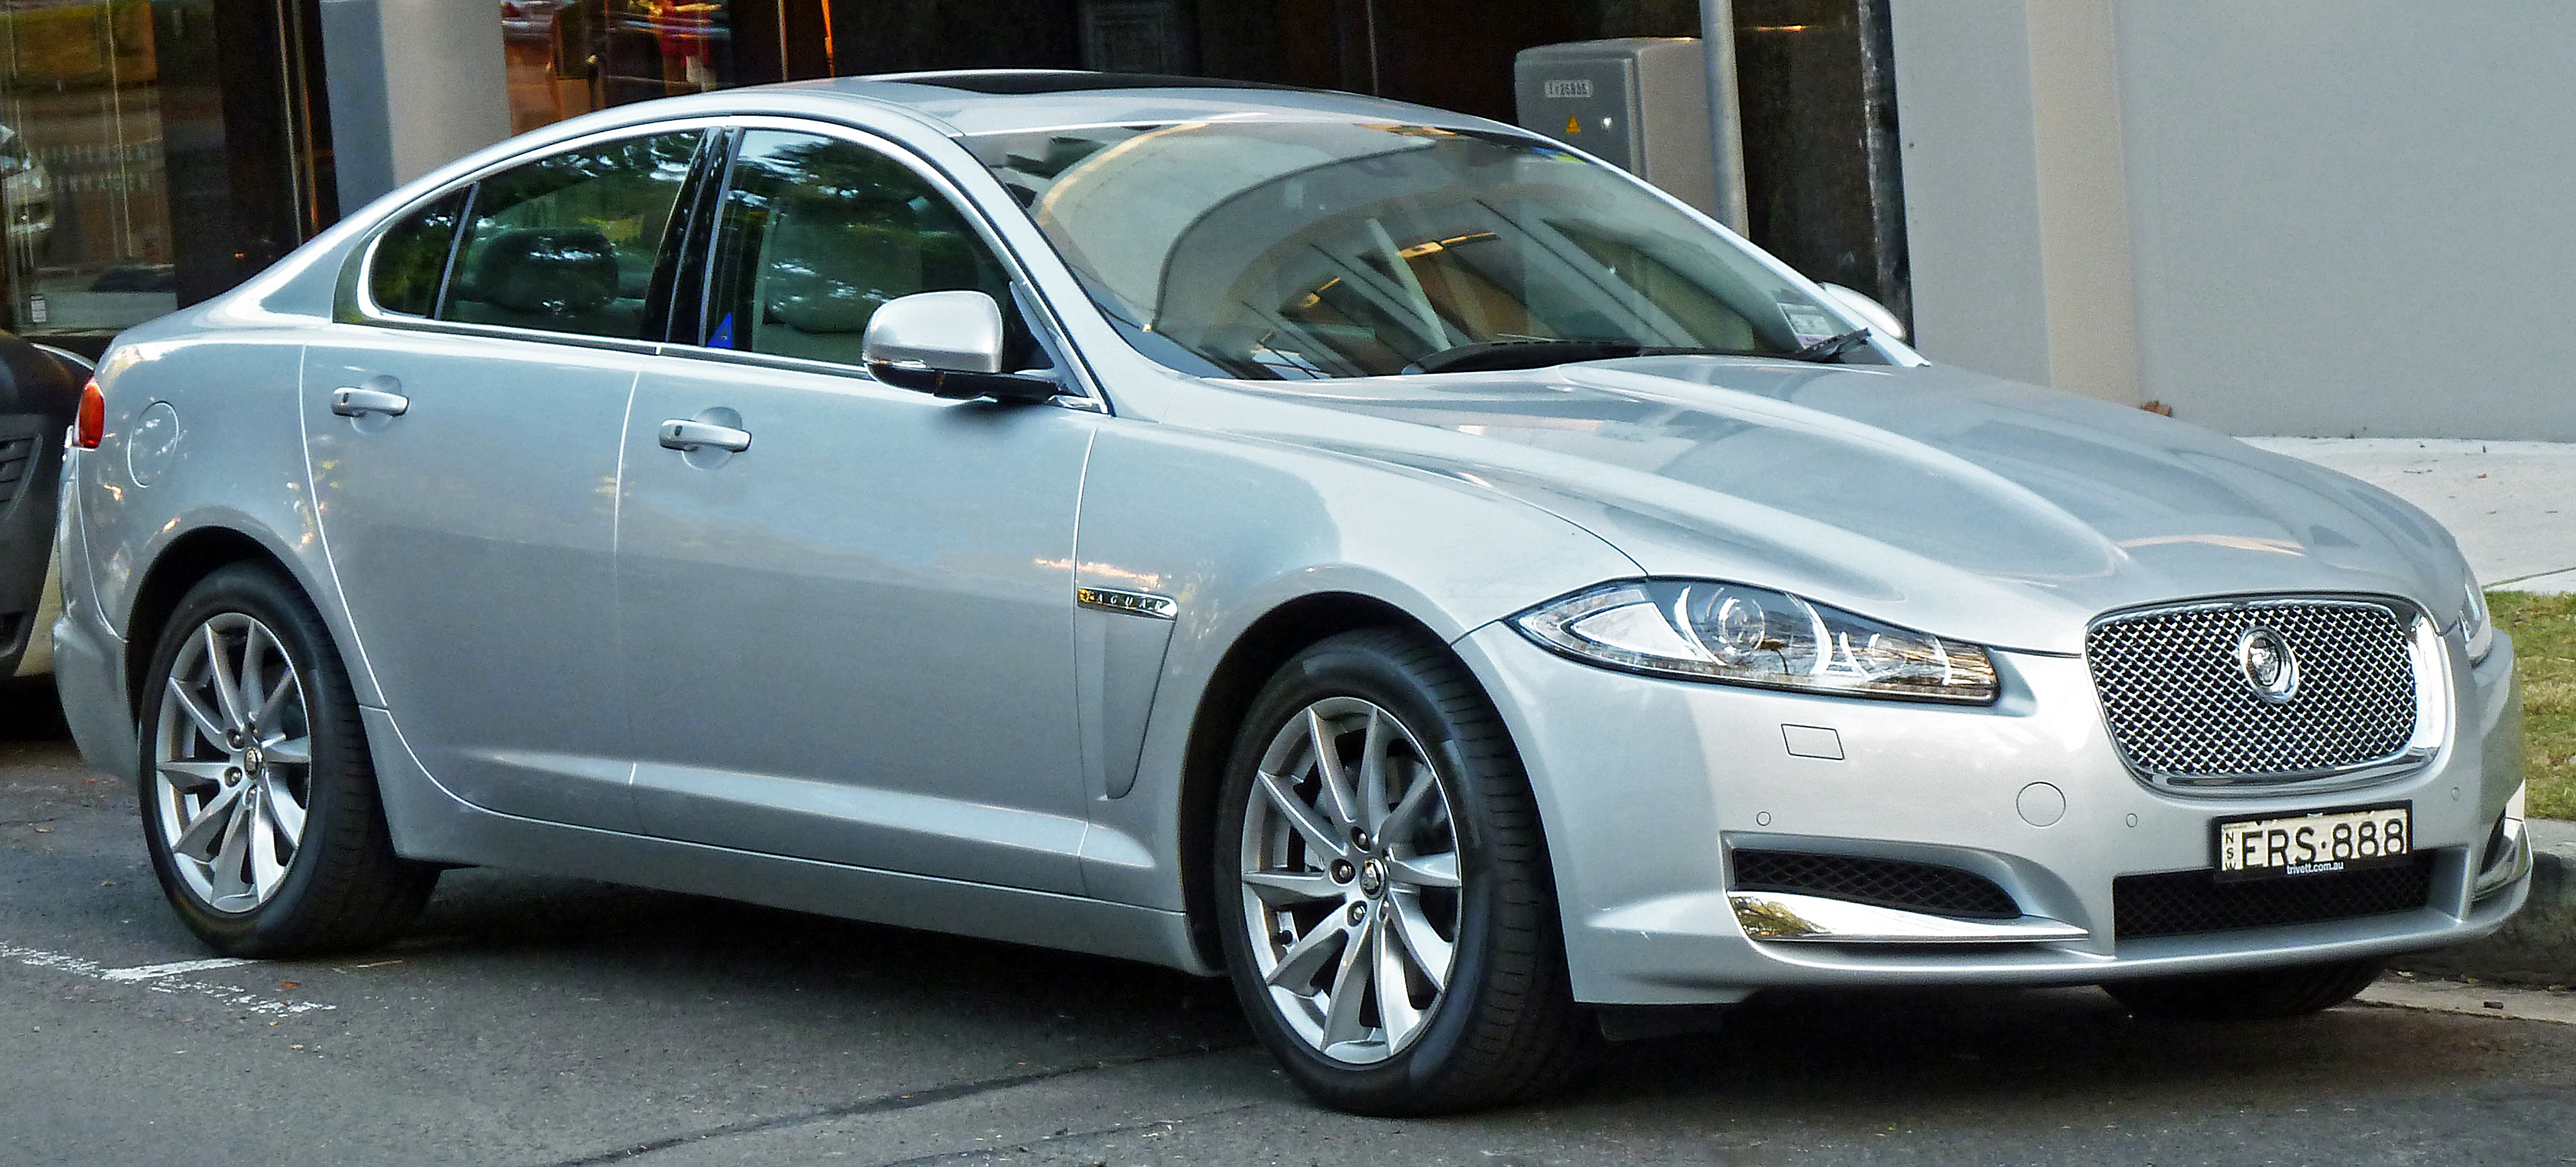 Jaguar Xf X My Sedan